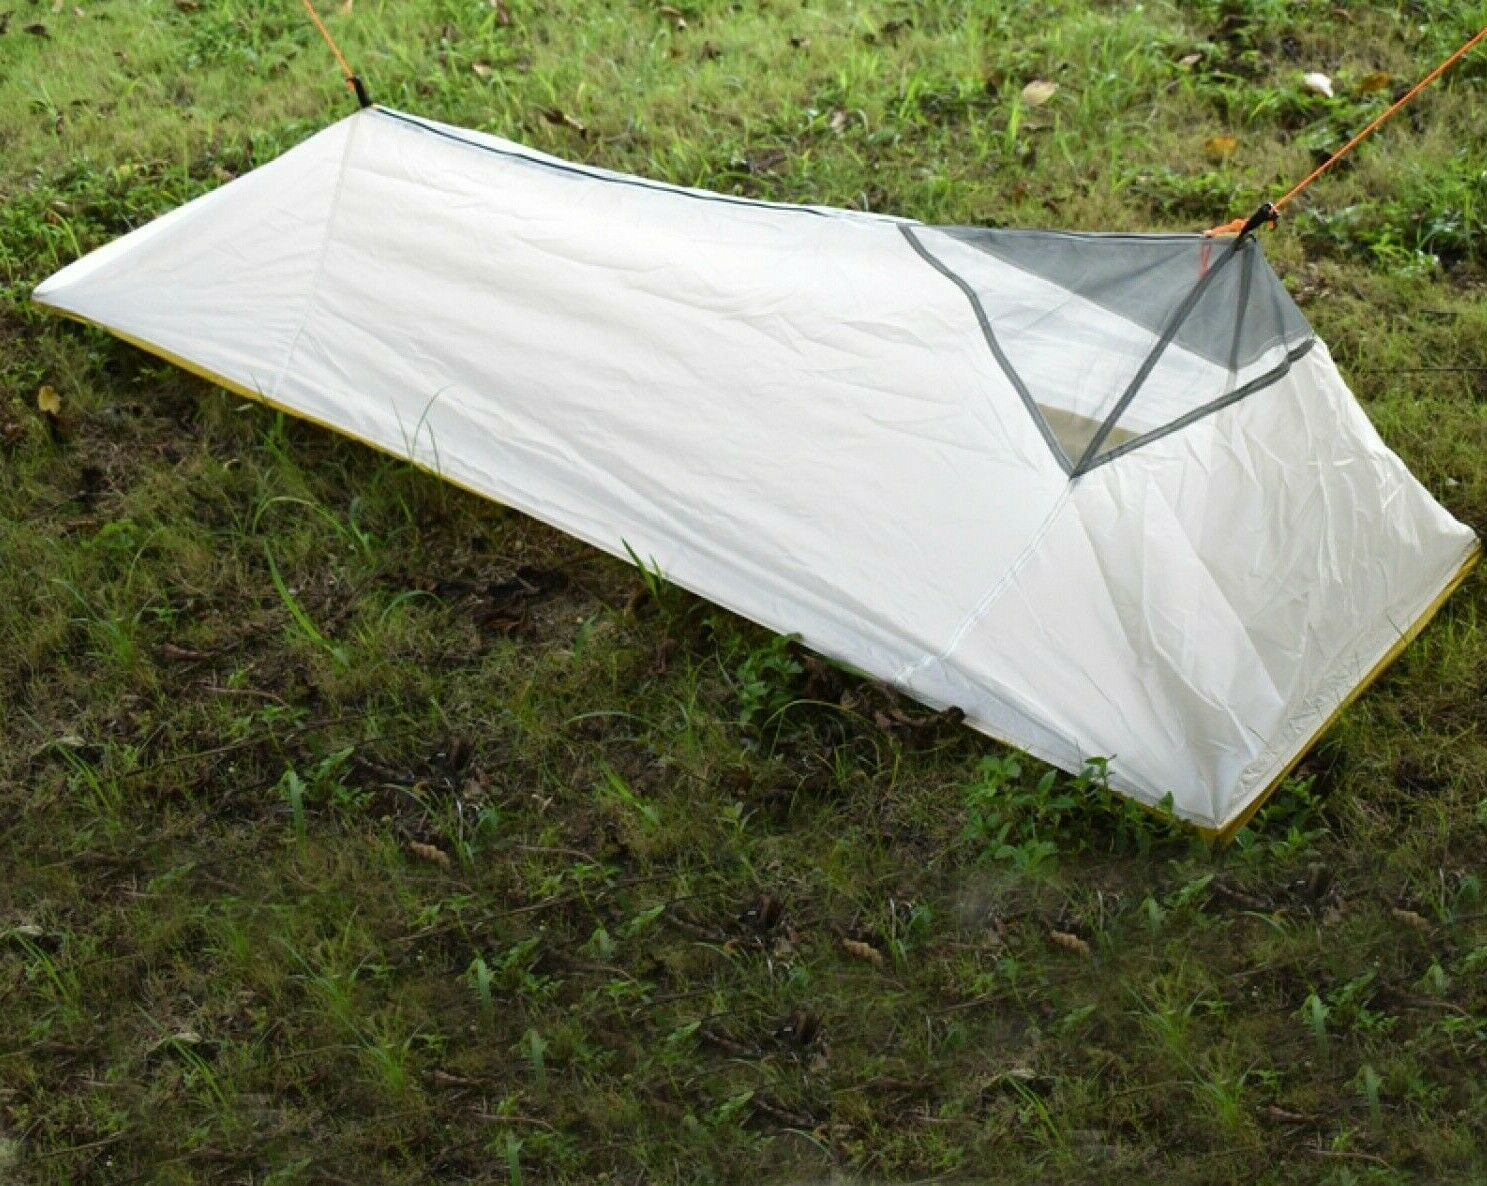 4 Seasons Inner Mesh Tent Outdoor Summer Camping Tent Hiking 1 -2 Person Nylon